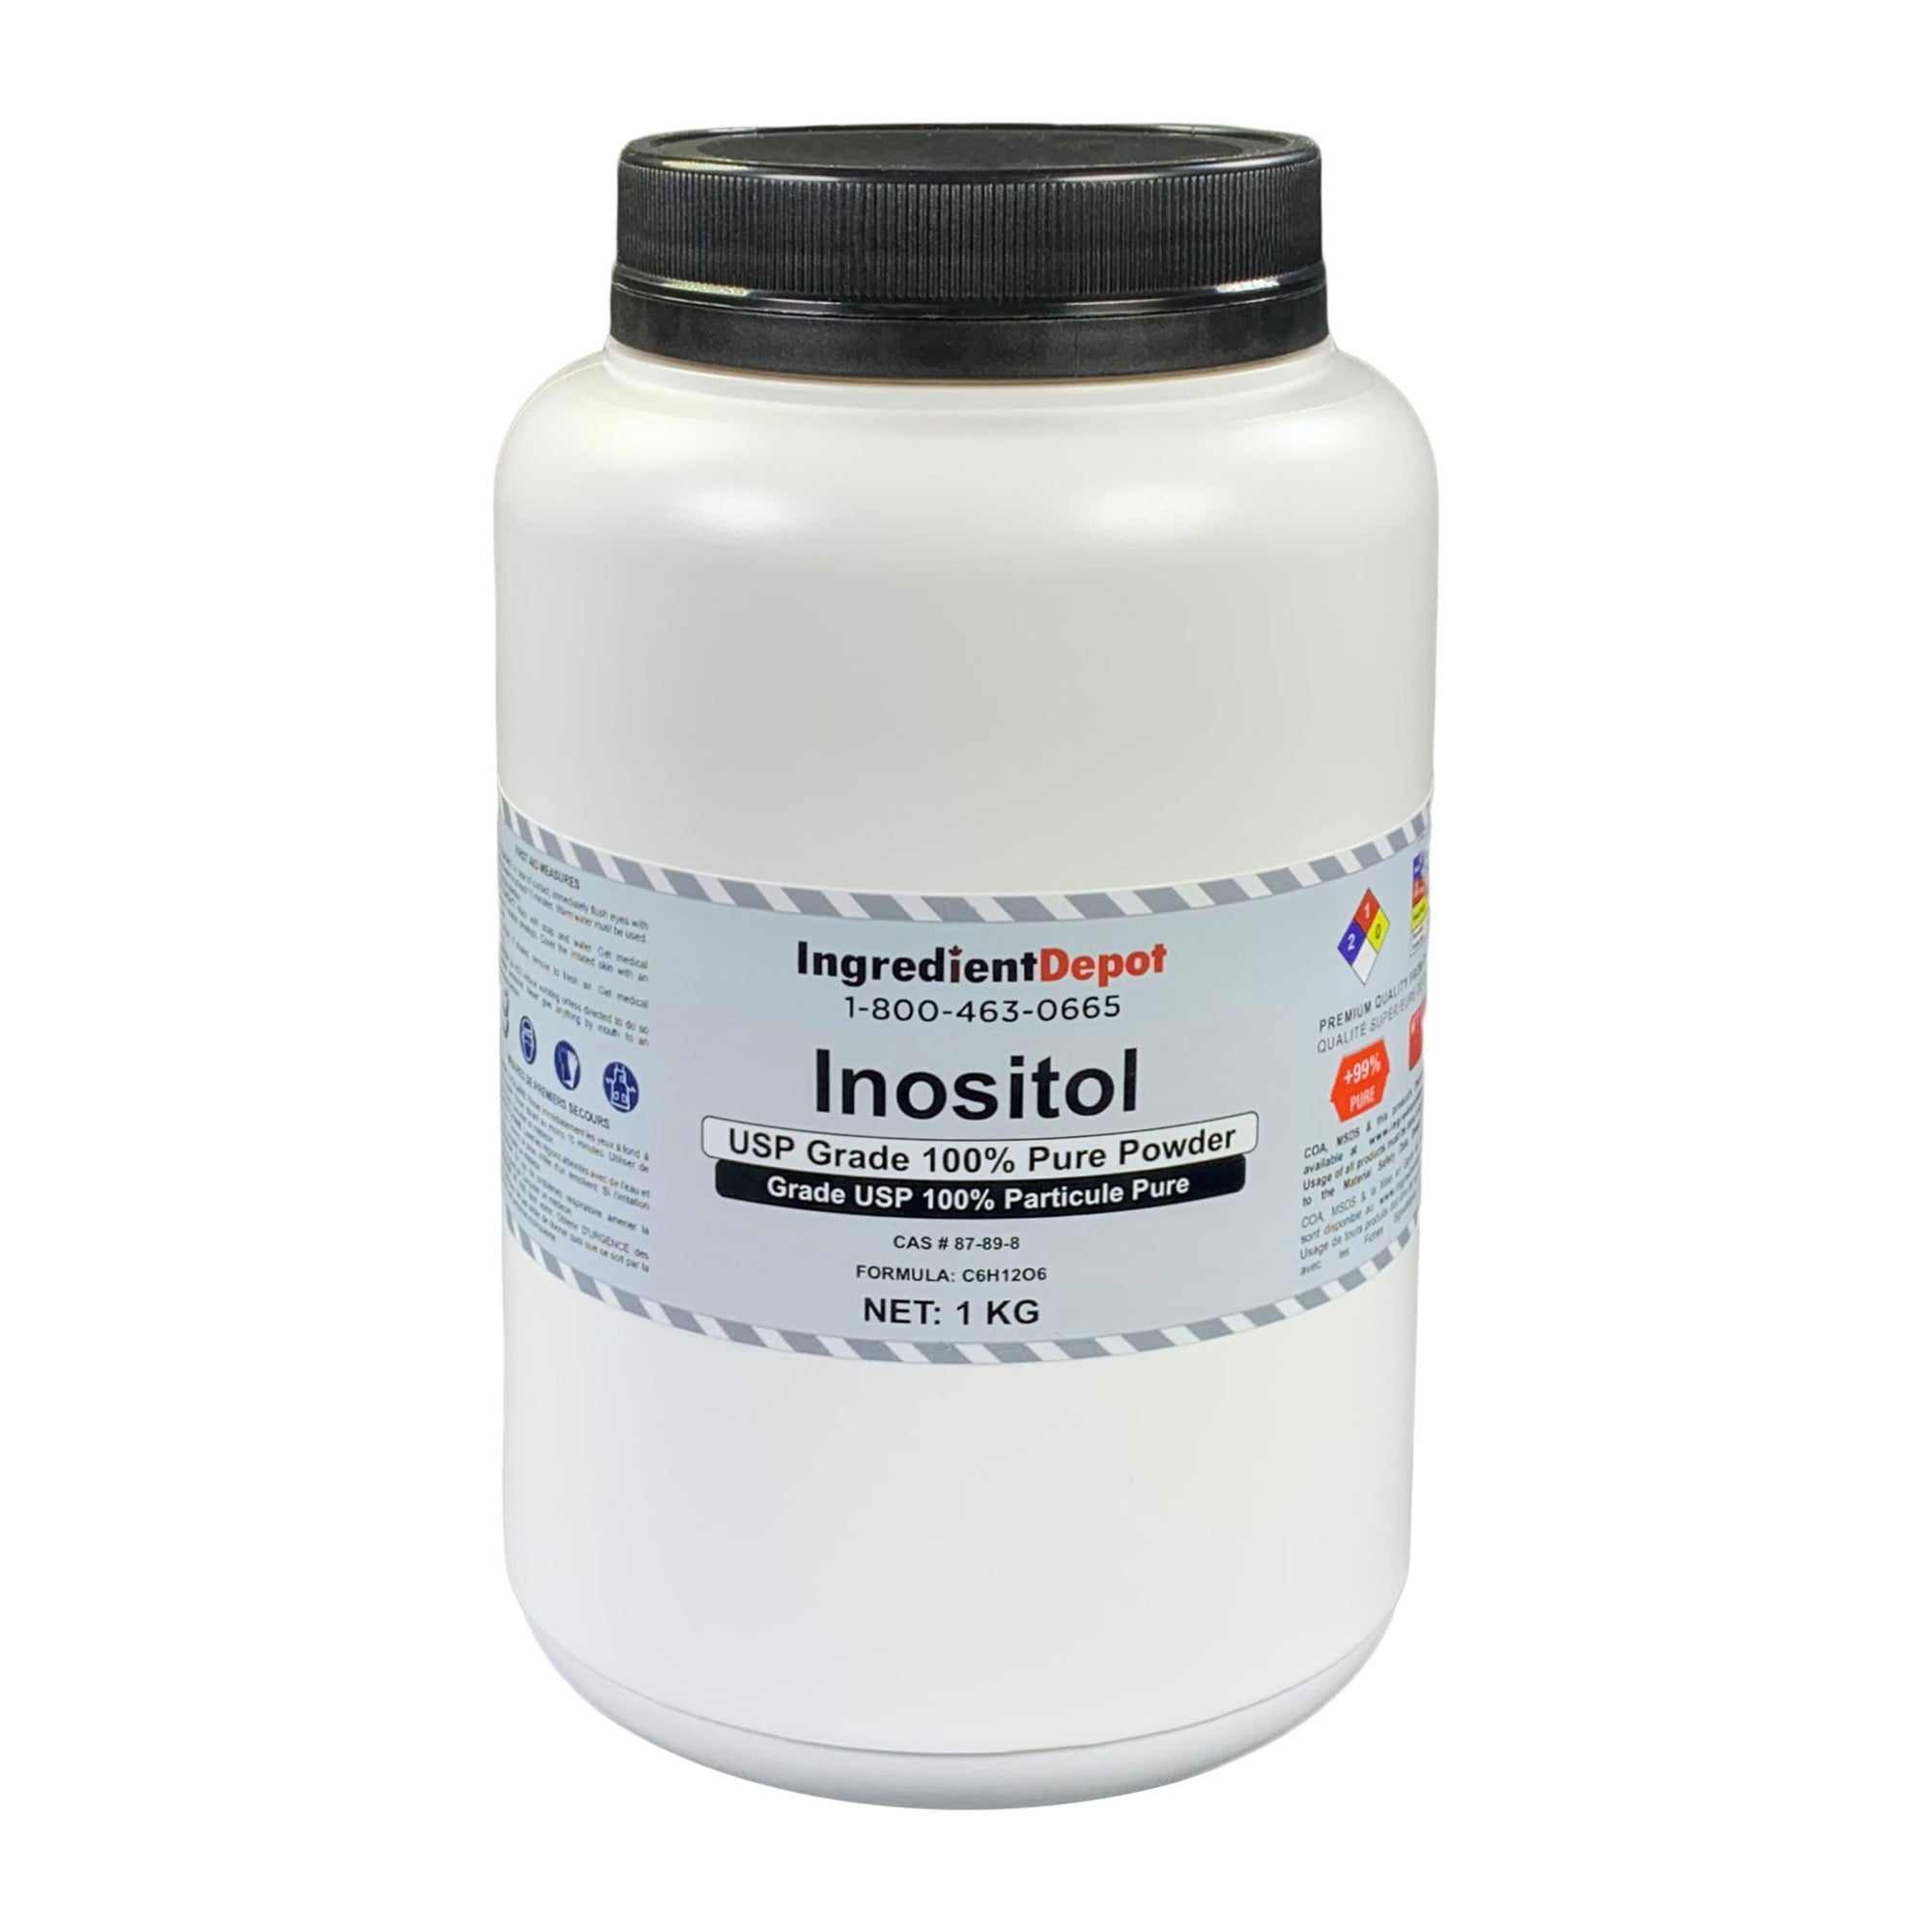 Inositol USP Grade 100% Pure Powder | 1 kg Jar